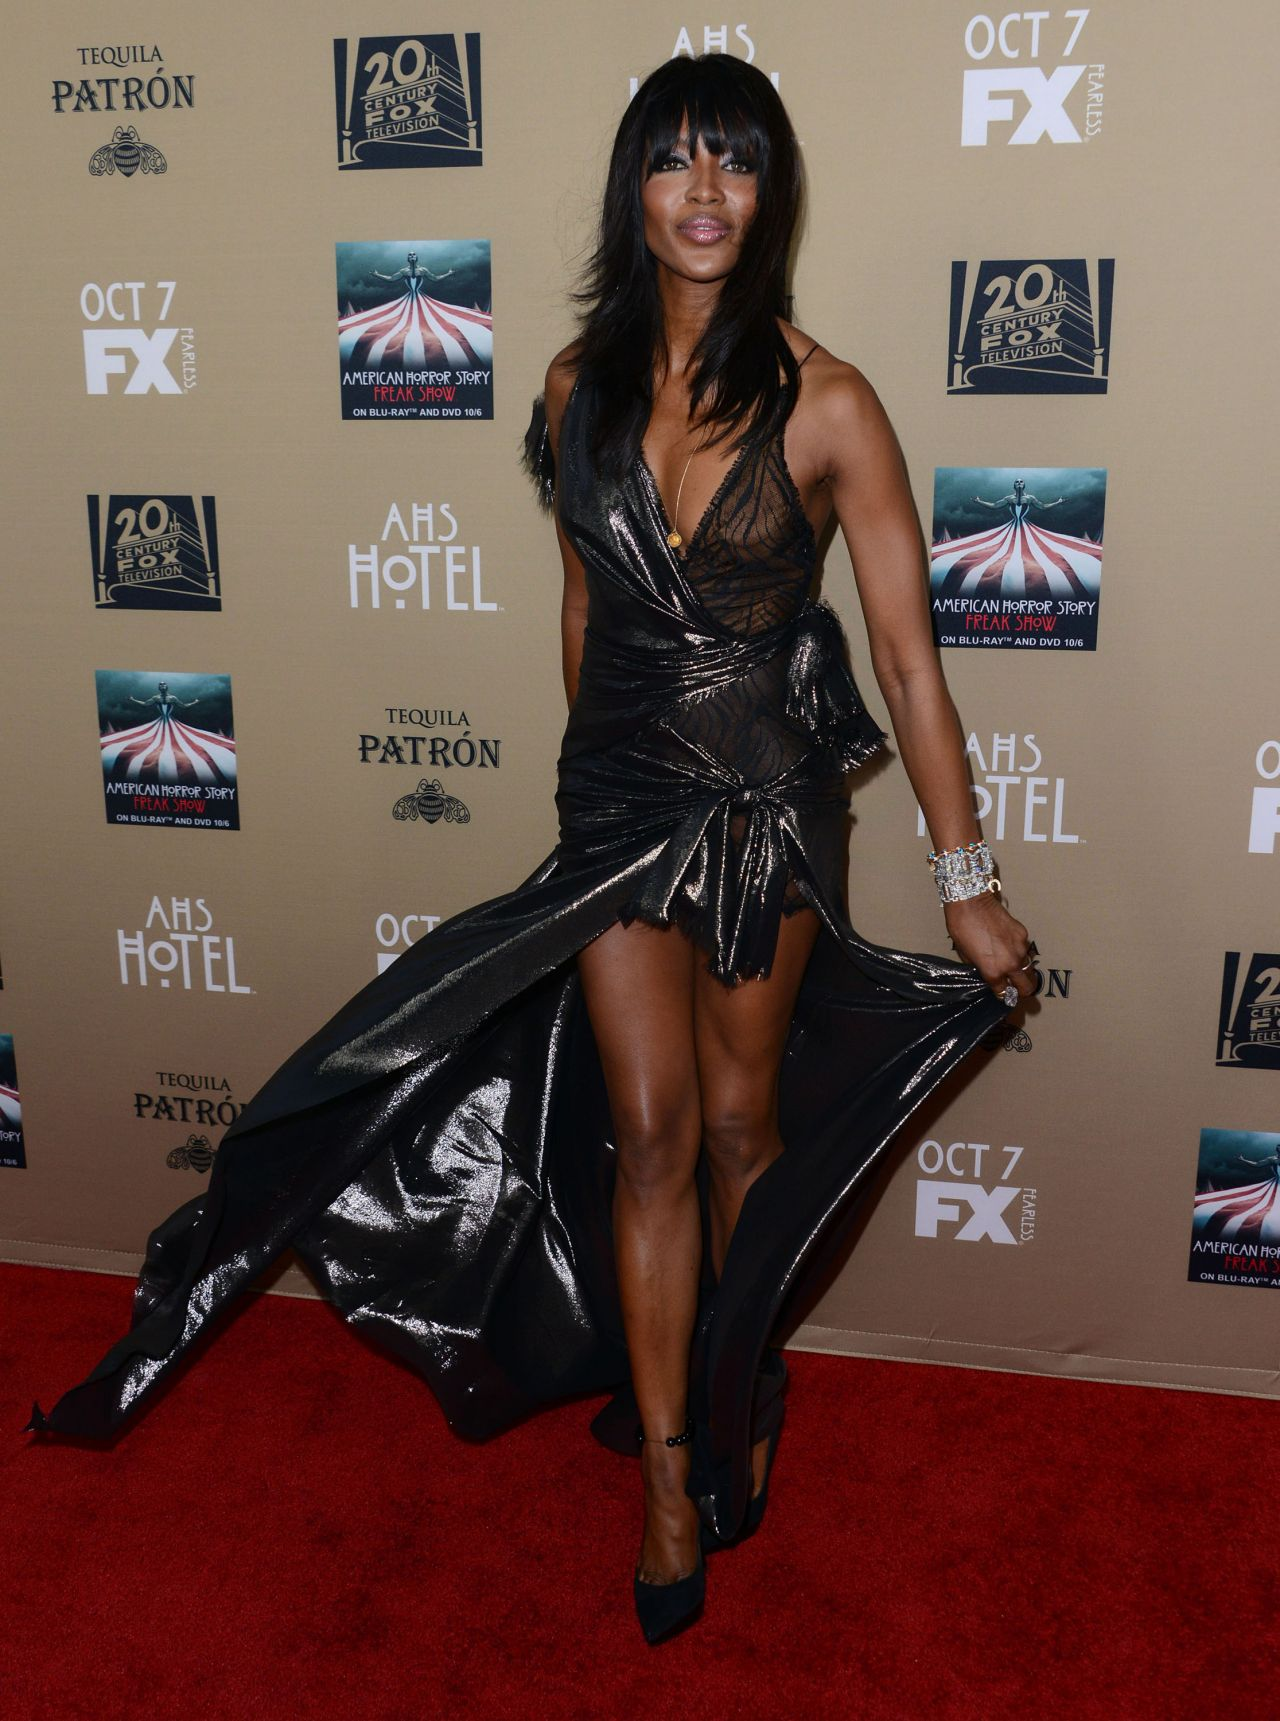 naomi-campbell-fx-s-american-horror-story-hotel-screening-in-los-angeles_2